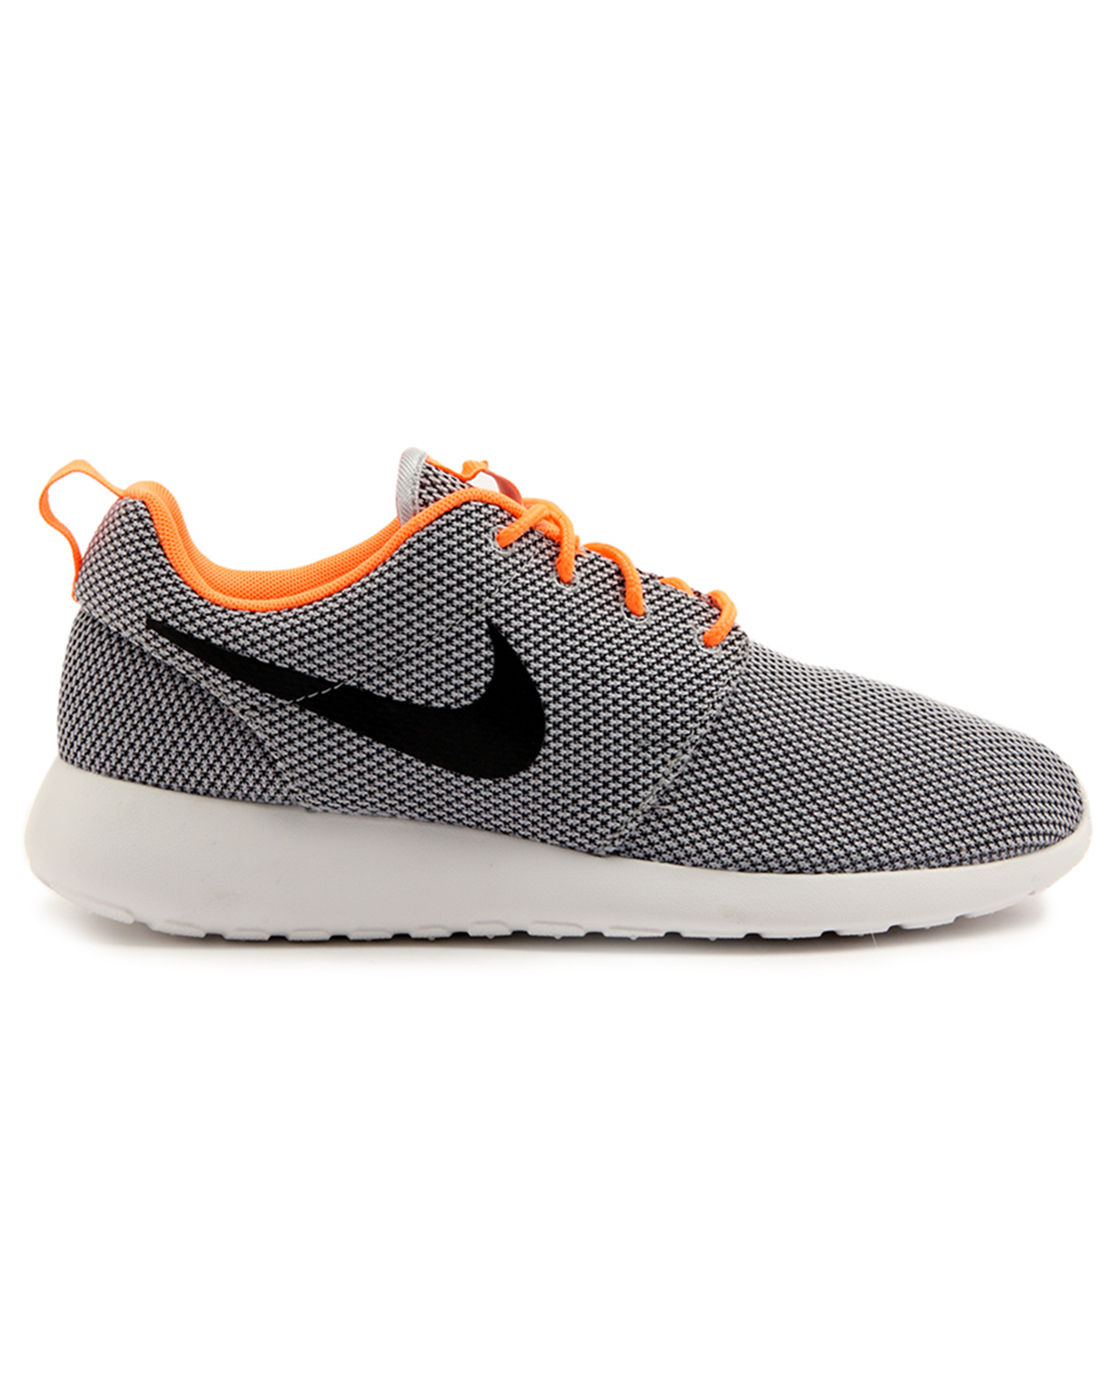 nike roshe run grey sneakers in gray for men lyst. Black Bedroom Furniture Sets. Home Design Ideas